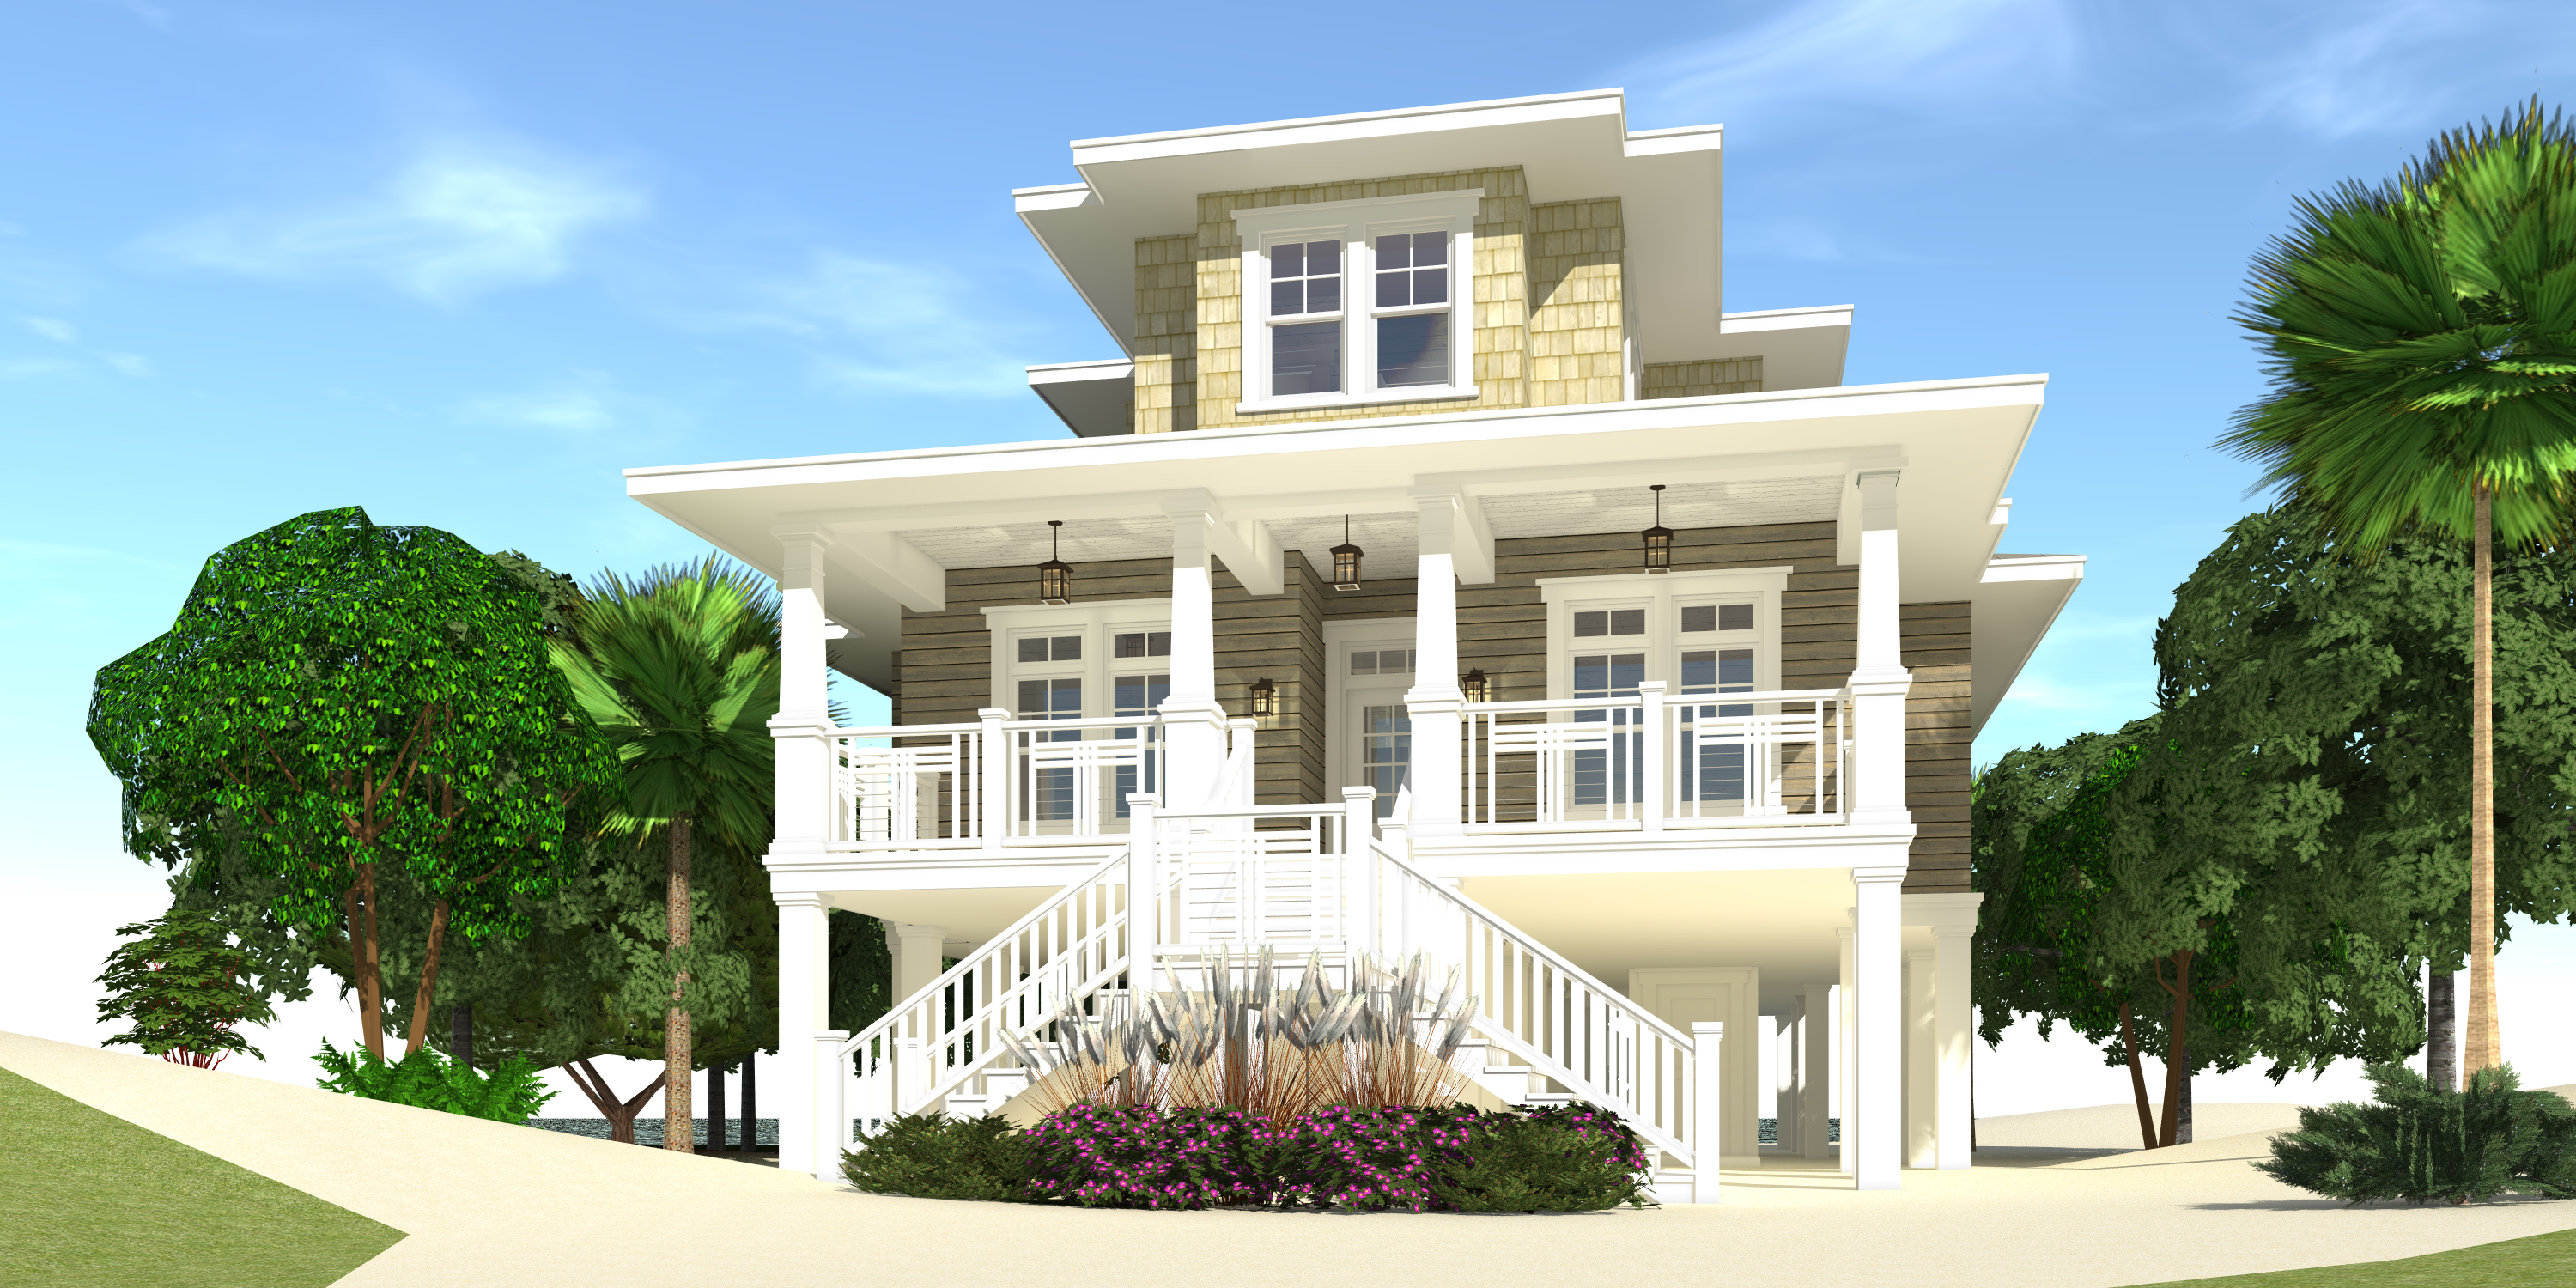 Fenton house plan tyree house plans for Beach style home plans